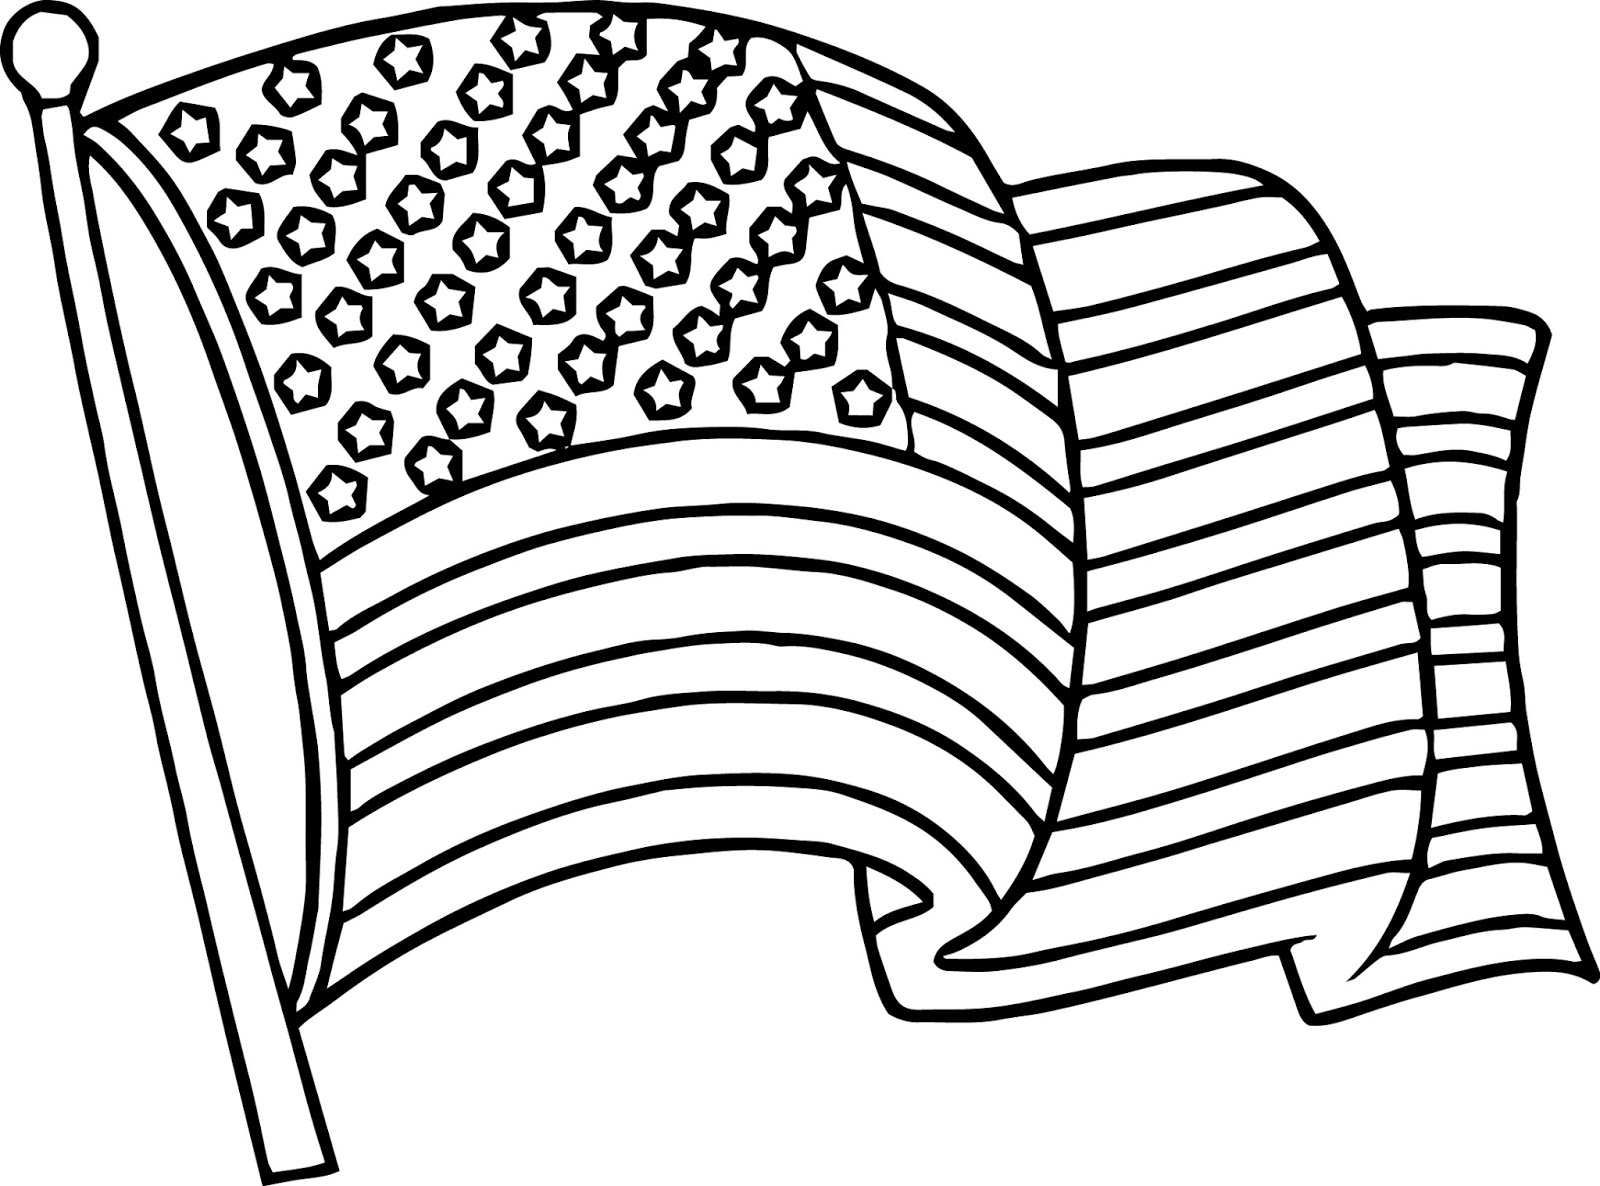 american flag coloring page american flag coloring page for the love of the country american flag page coloring